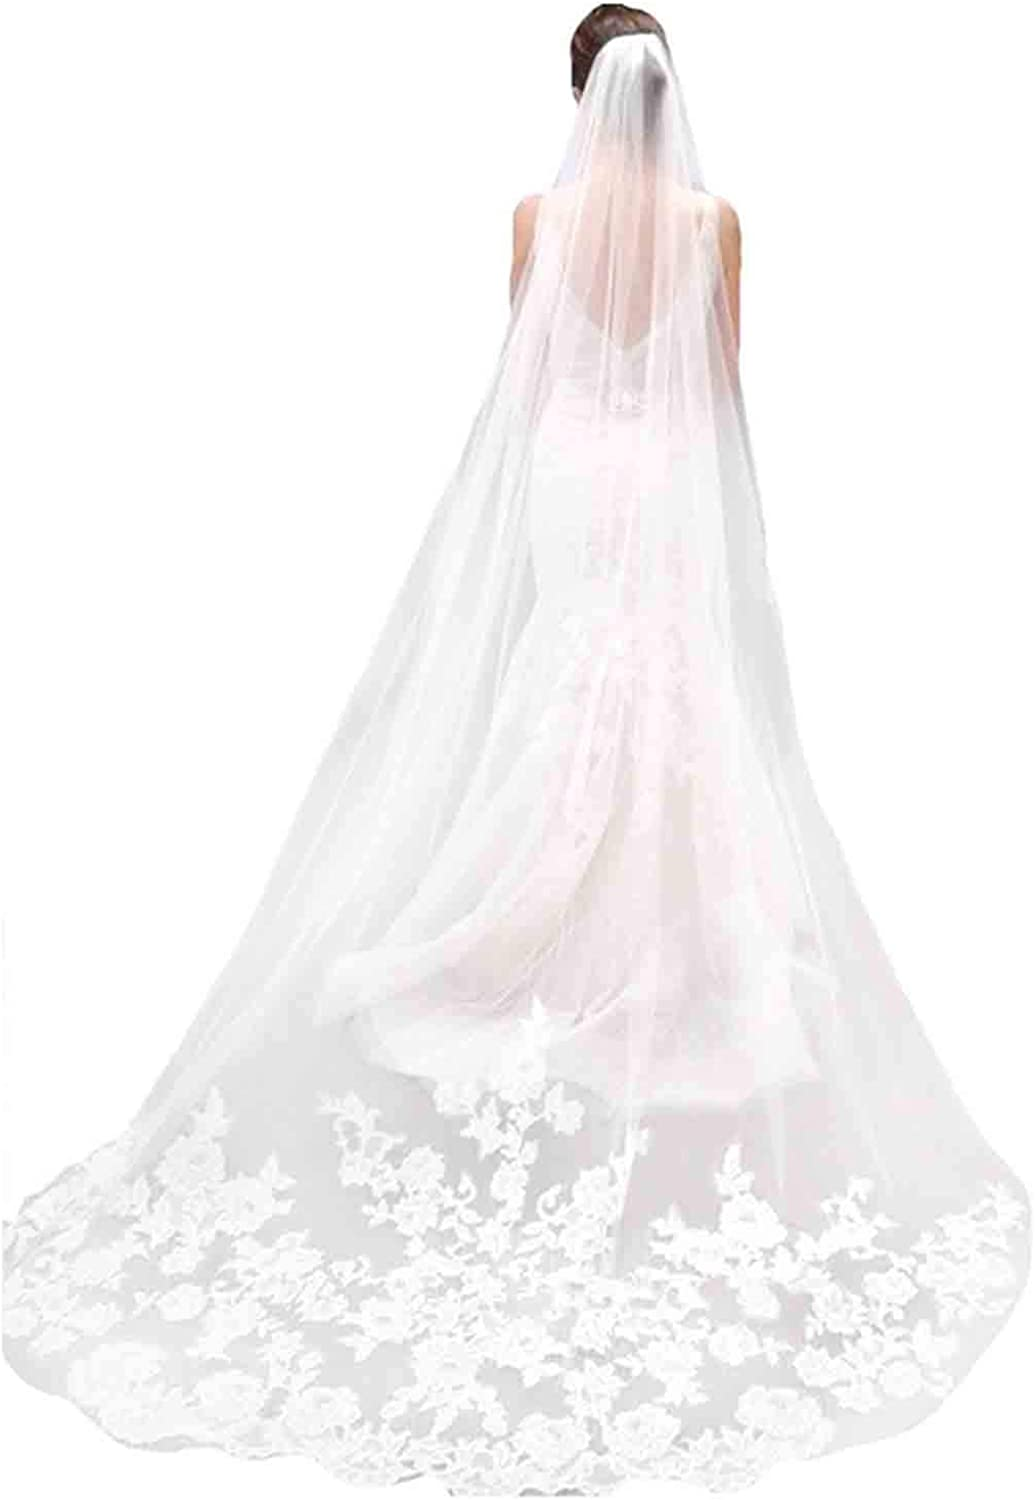 Olbye Women's Wedding Veil 108 Inch Cathedral Lace Veil Single Tier 1T Long Veils For Brides Long Bridal Veil